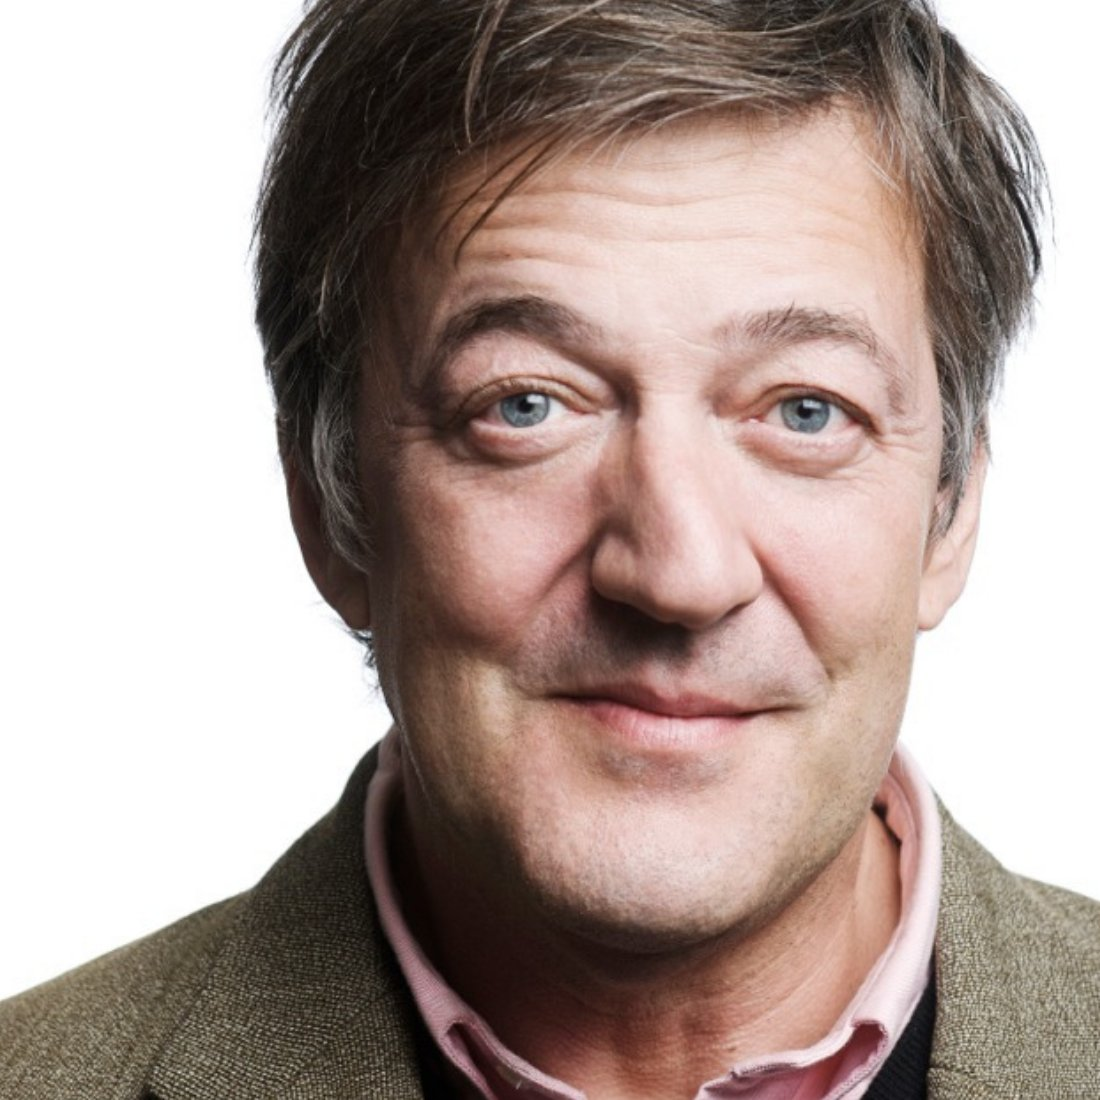 A Photo Of Stephen Fry